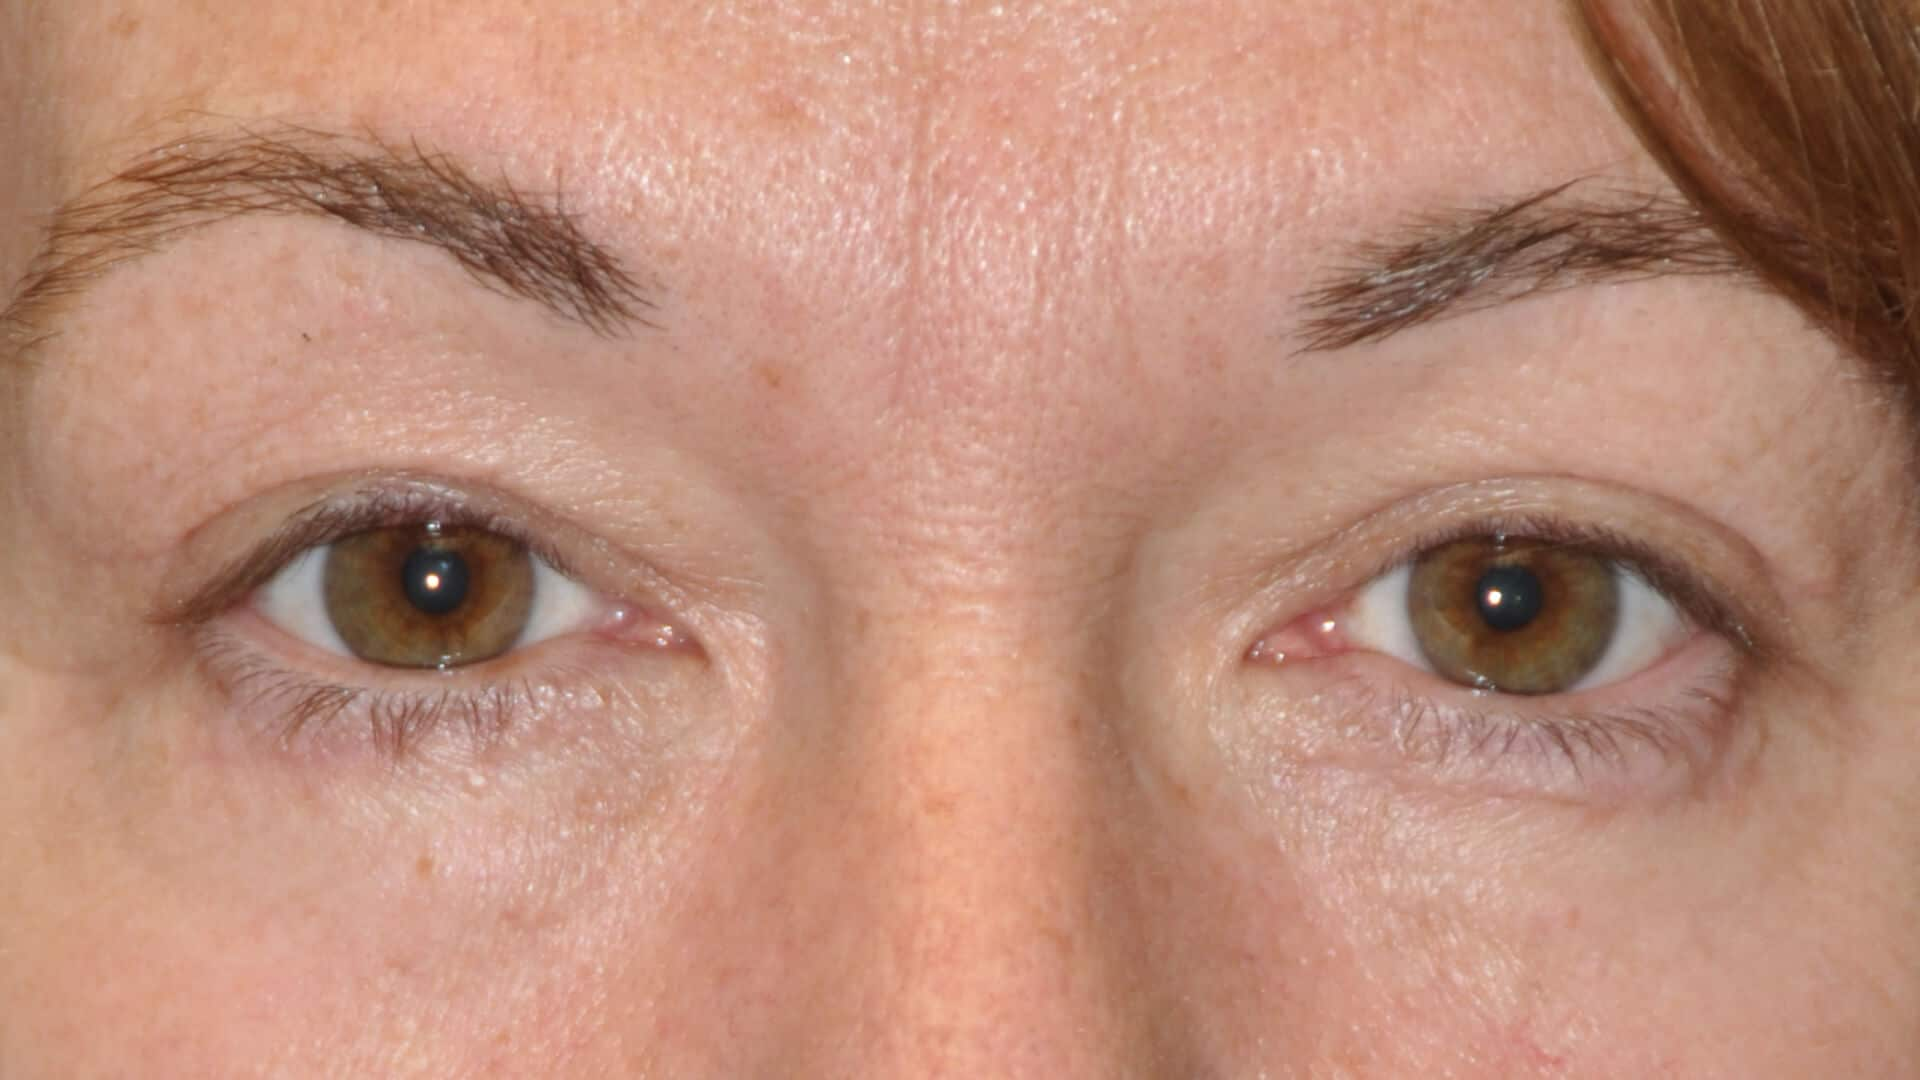 , Blepharoplasty (Eyelid Lift) – Upper